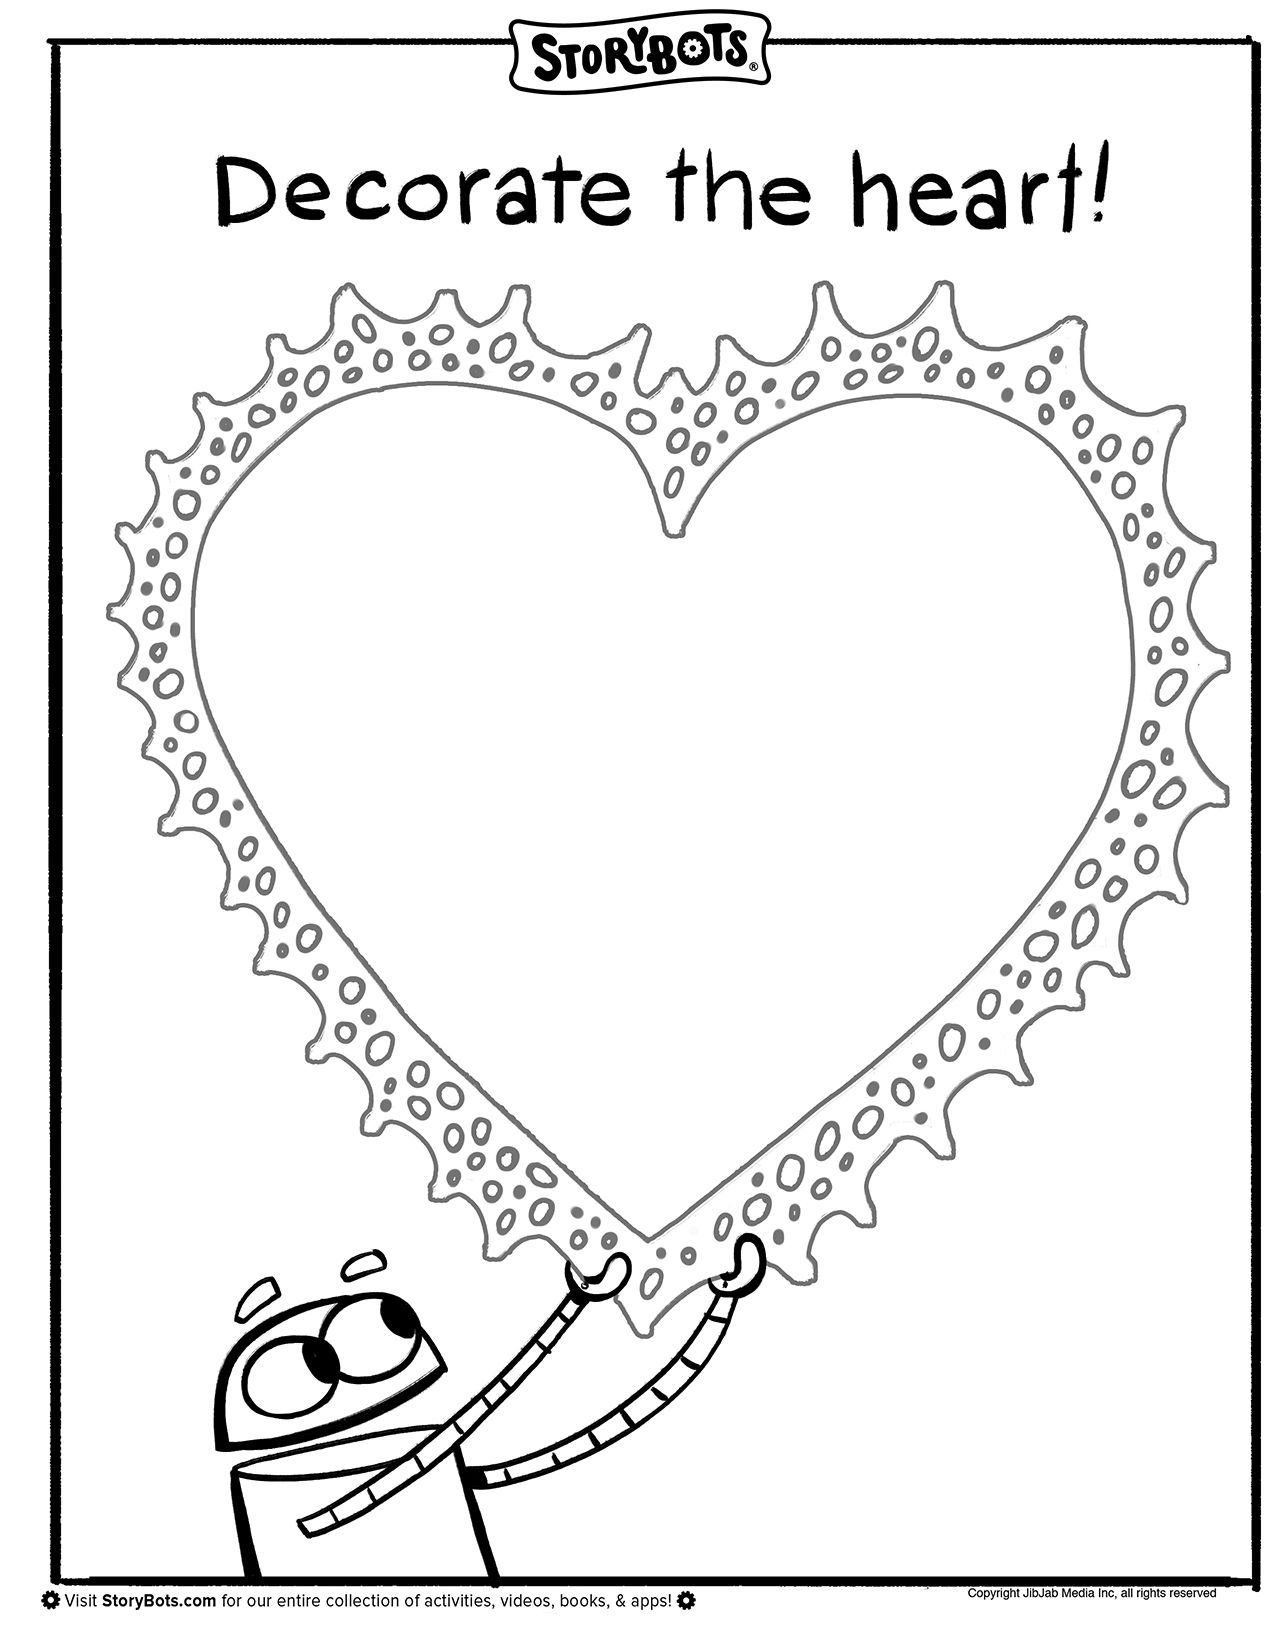 Decorate The Heart